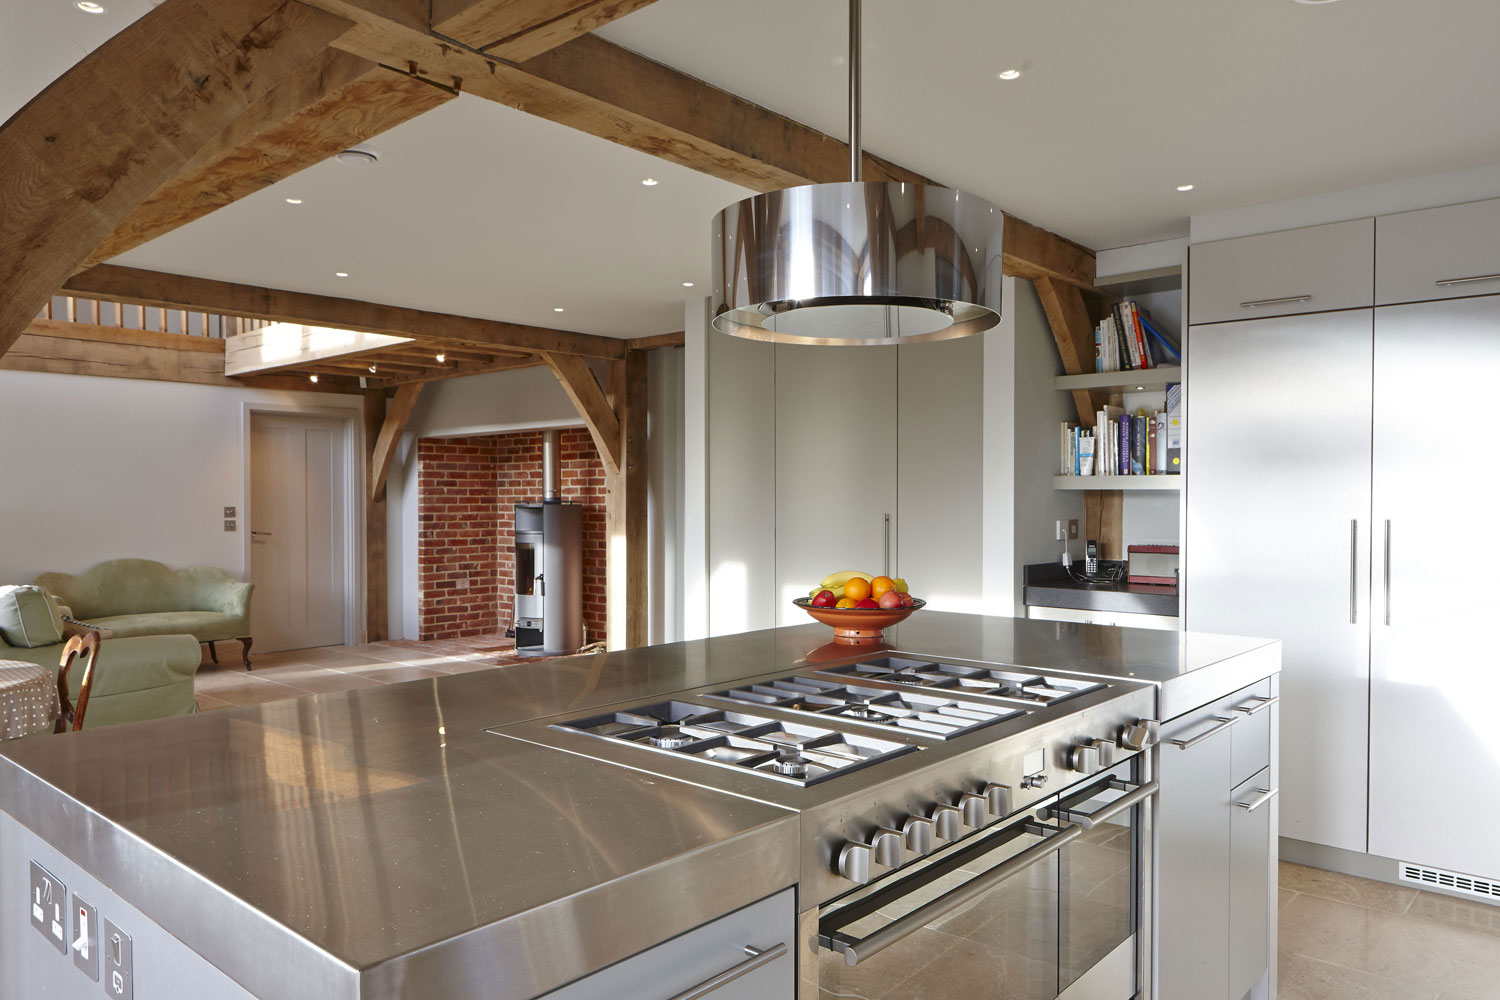 Stable Cottage Kitchen, Liss, Hampshire | Residential Photographer Hampshire | Interior Photography